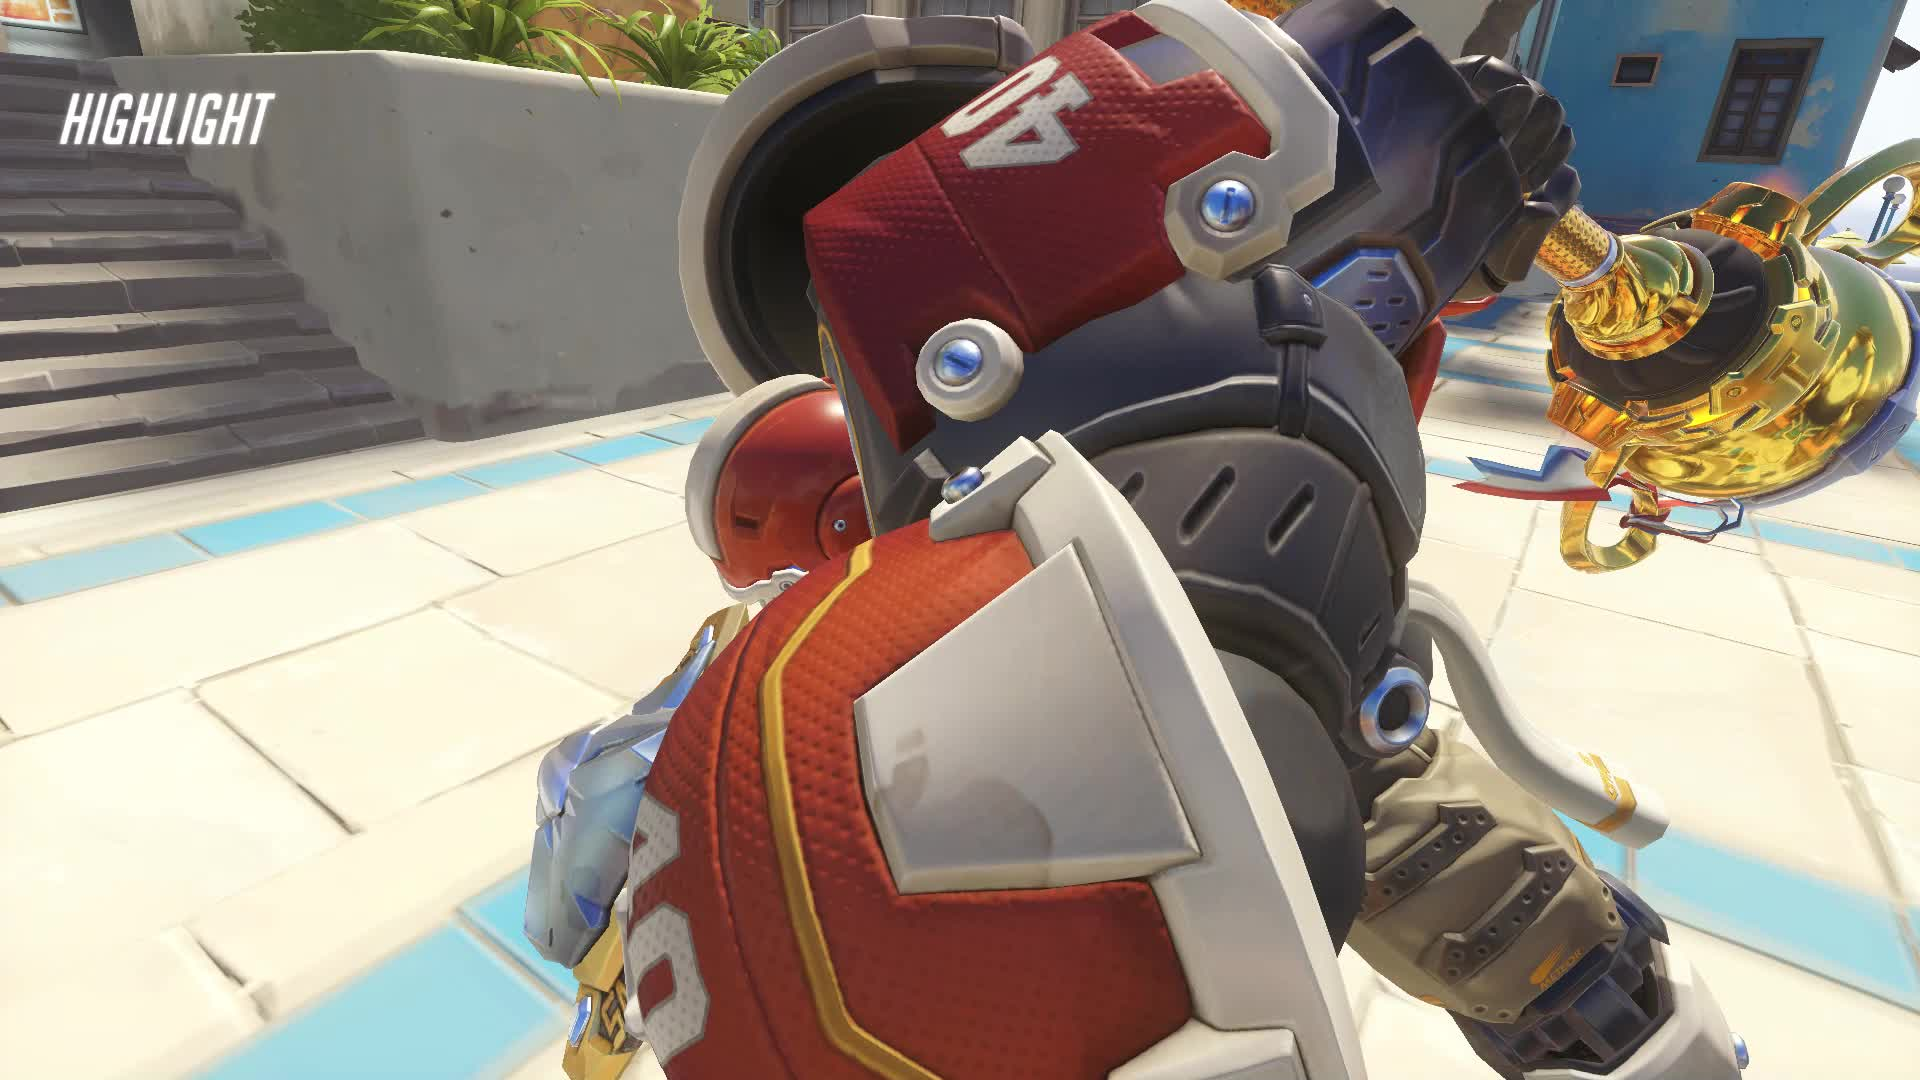 highlight, overwatch, quickplay memes 18-08-10 02-51-15 GIFs